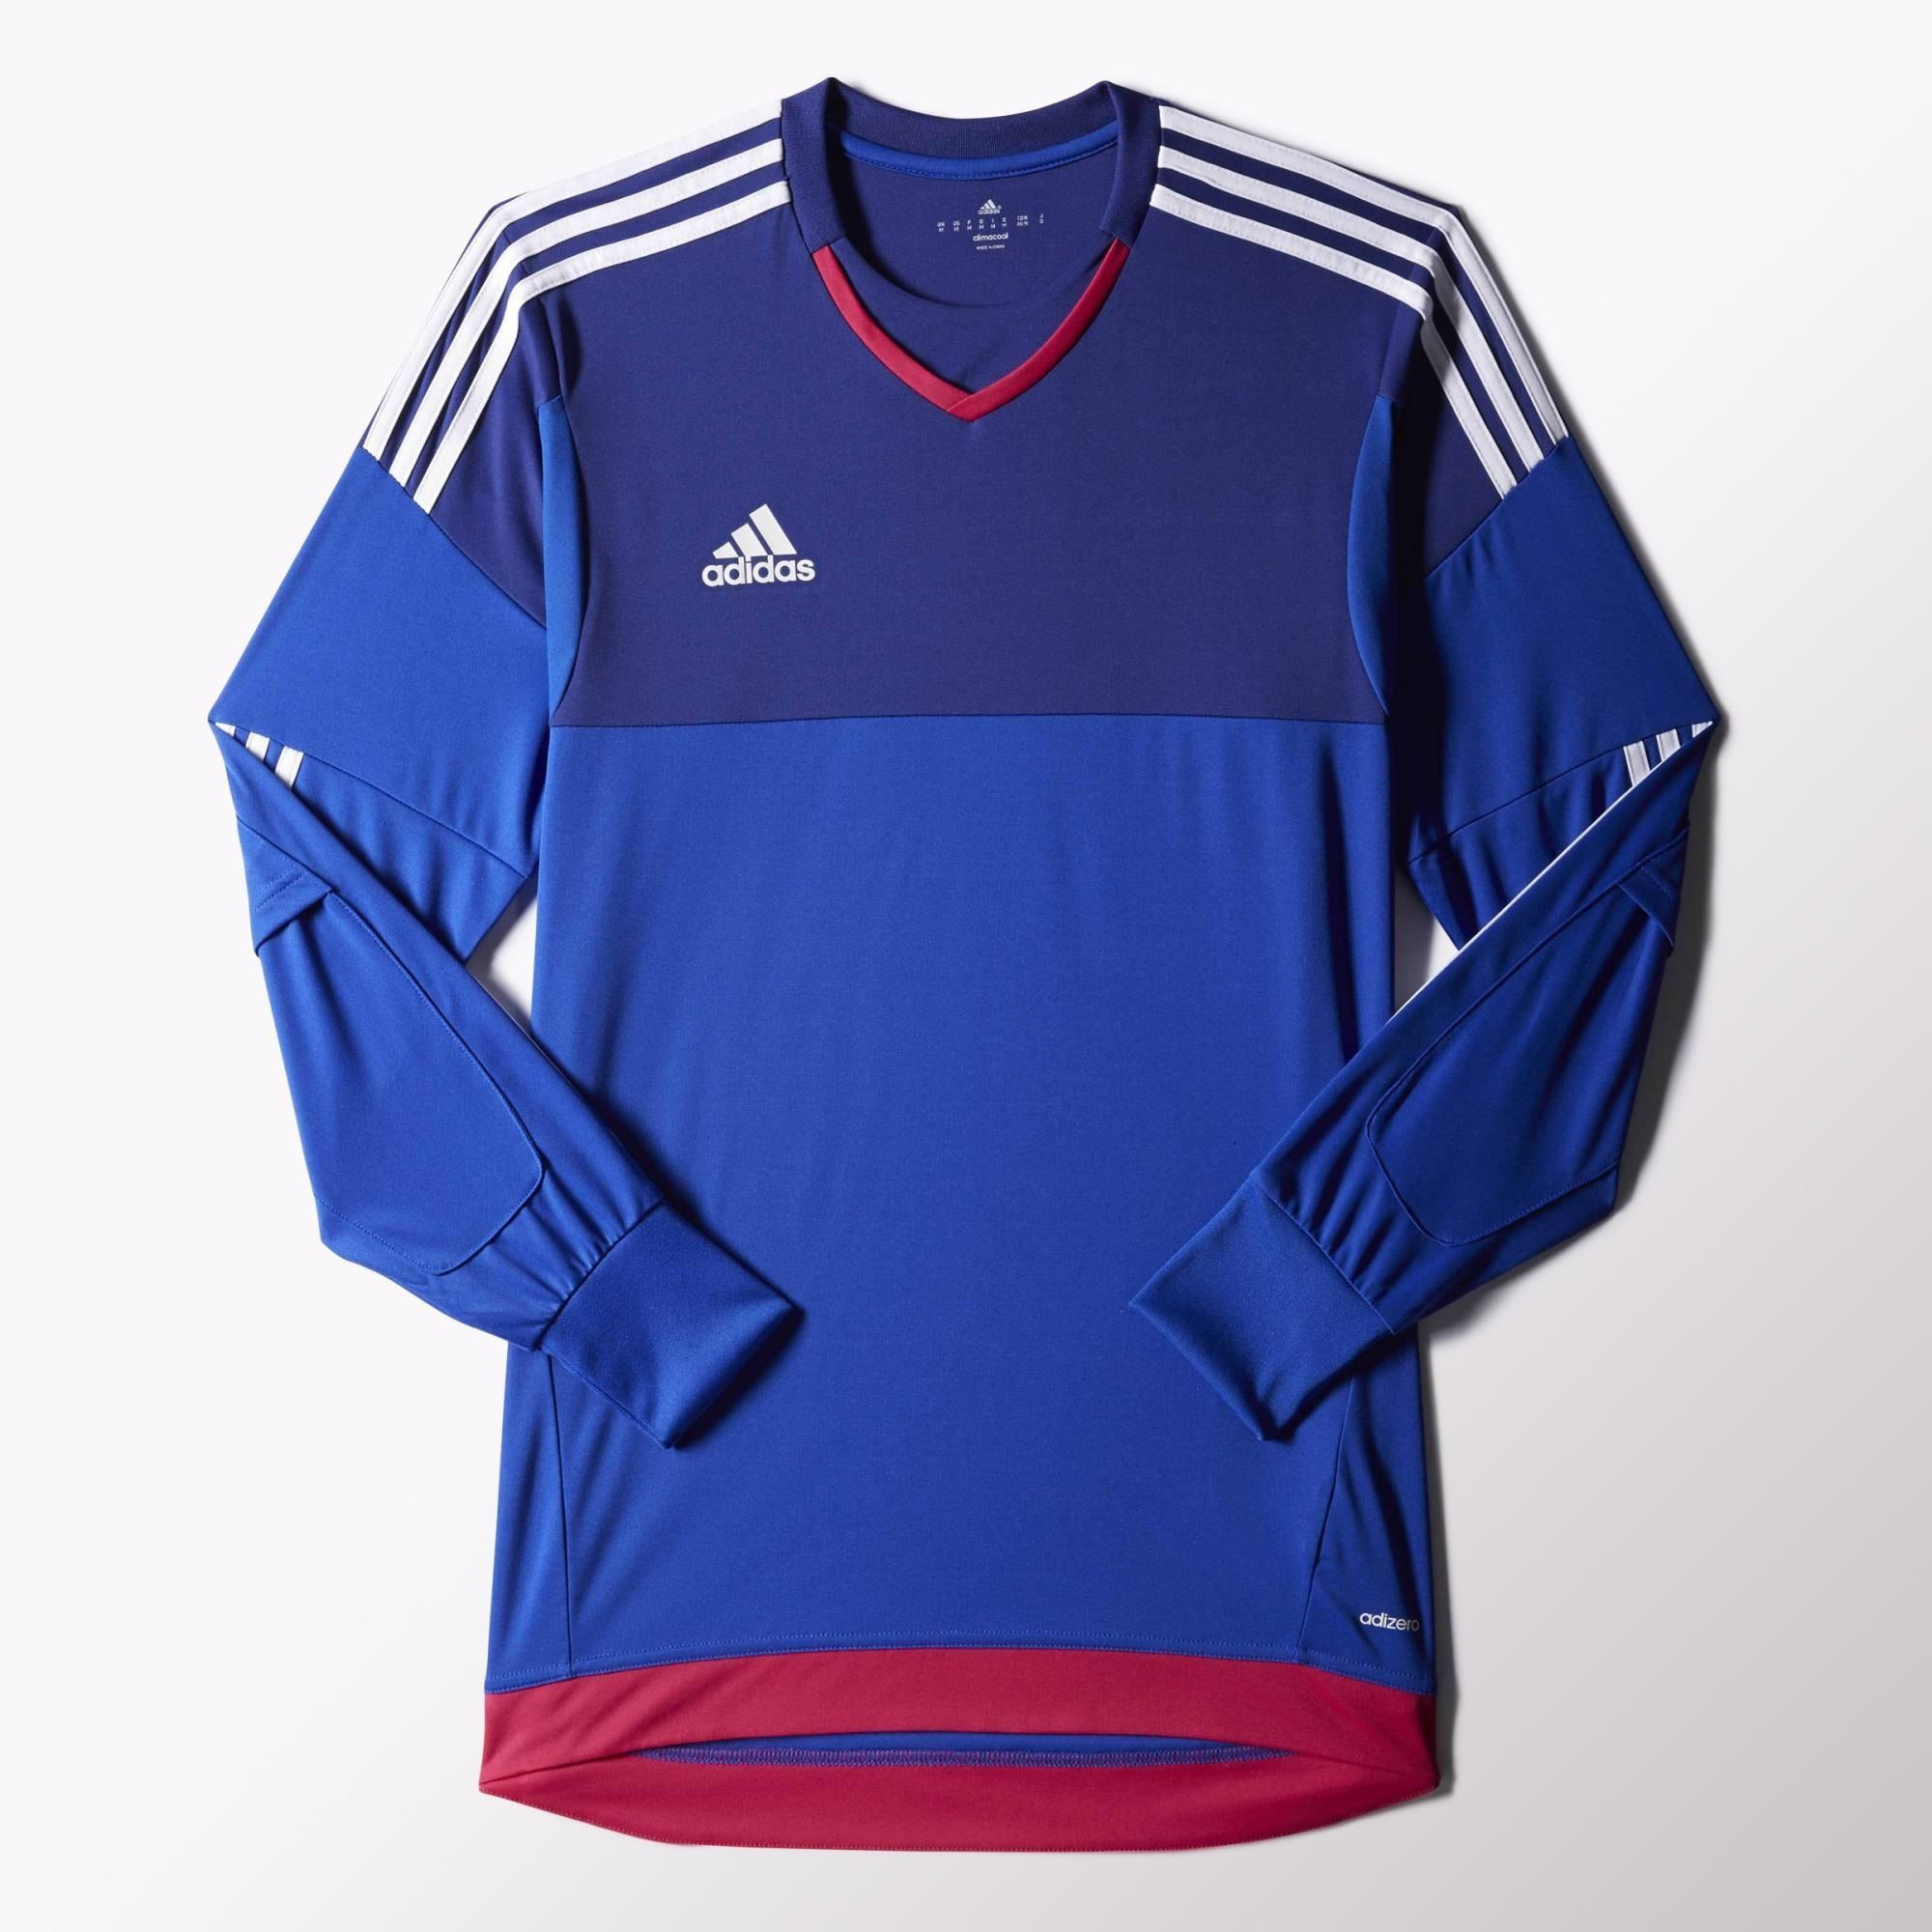 73c97c7c532 adidas Top 15 Goalkeeper Jersey - Blue | adidas US | Cool goalkeeper ...